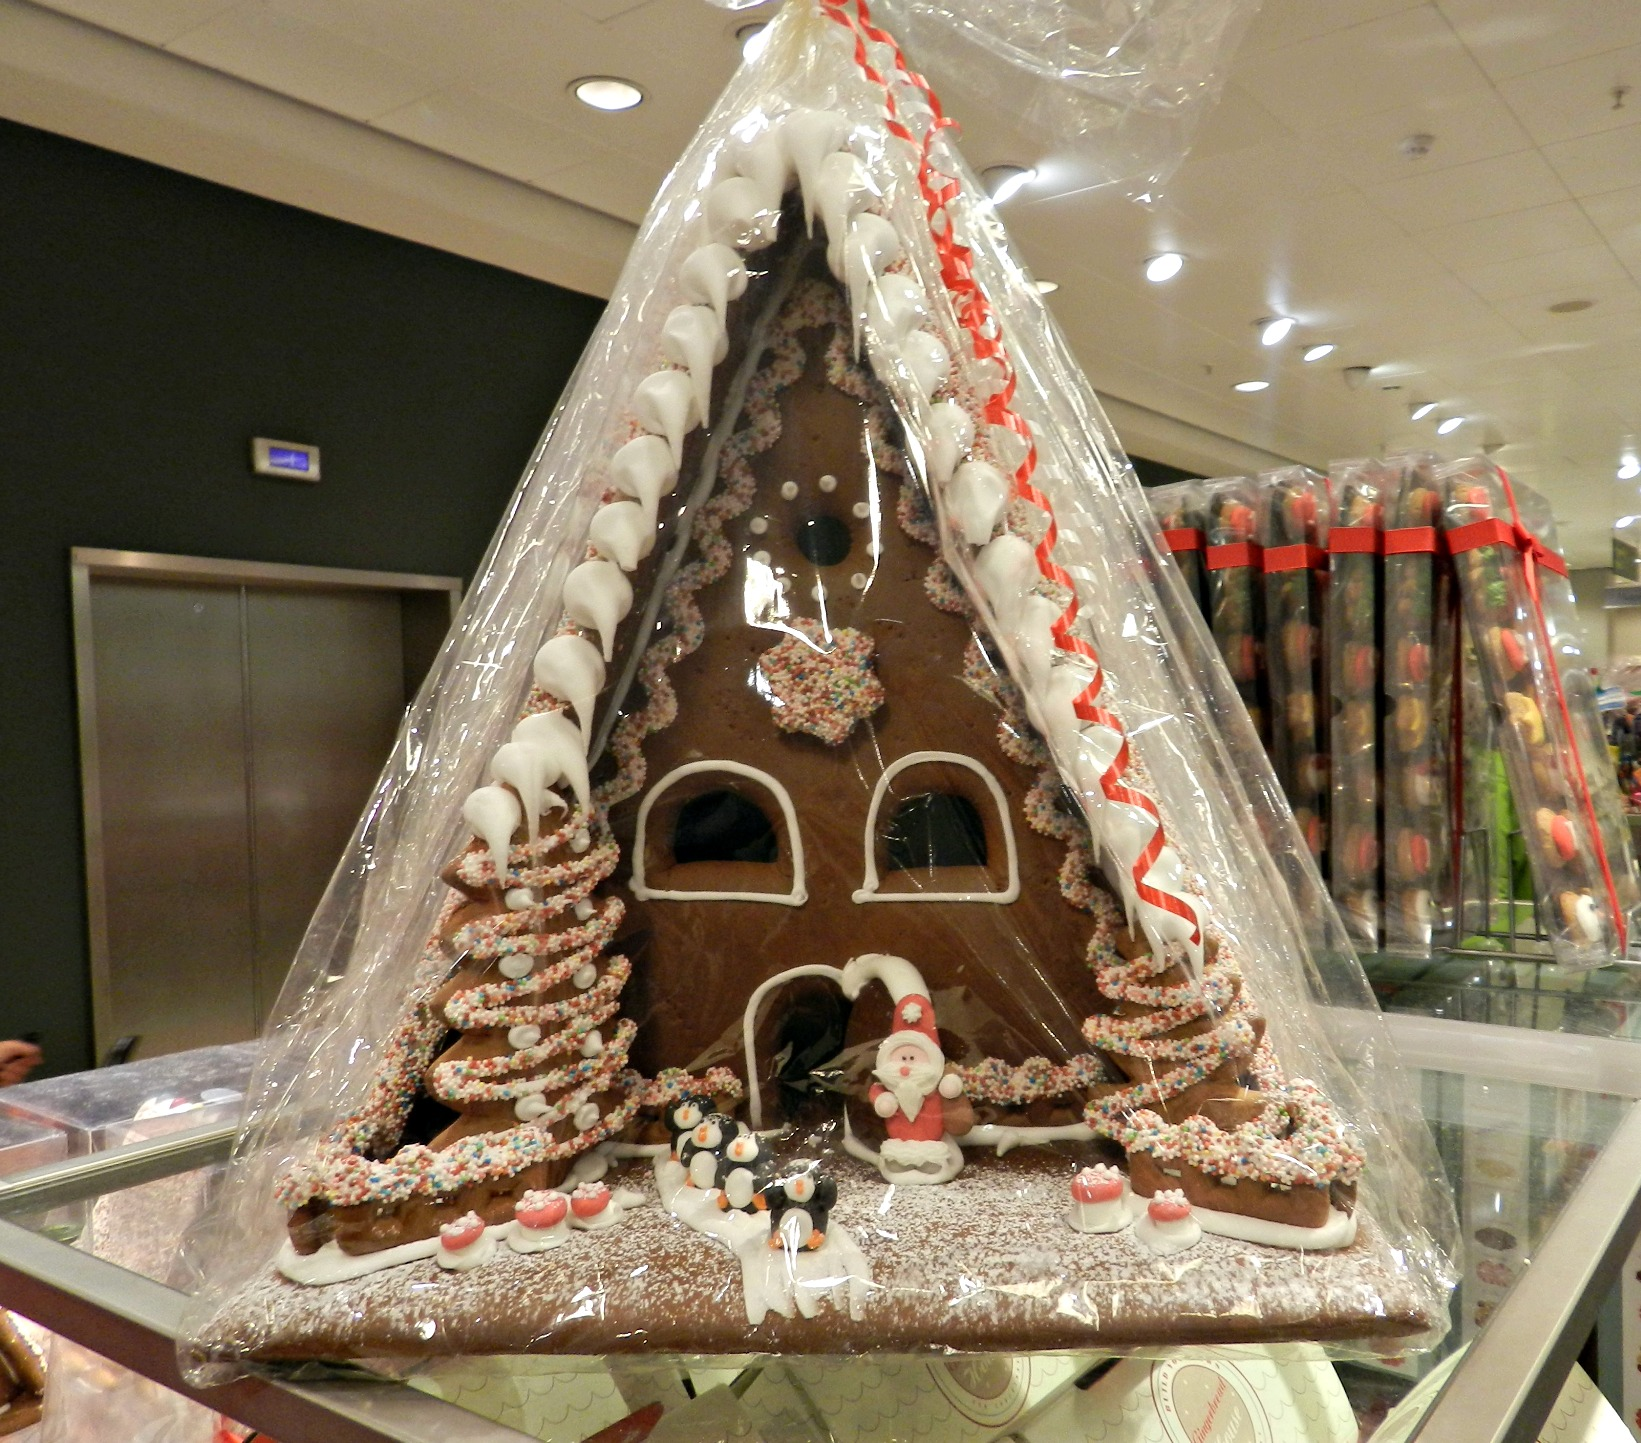 Gingerbread house, traditional christmas